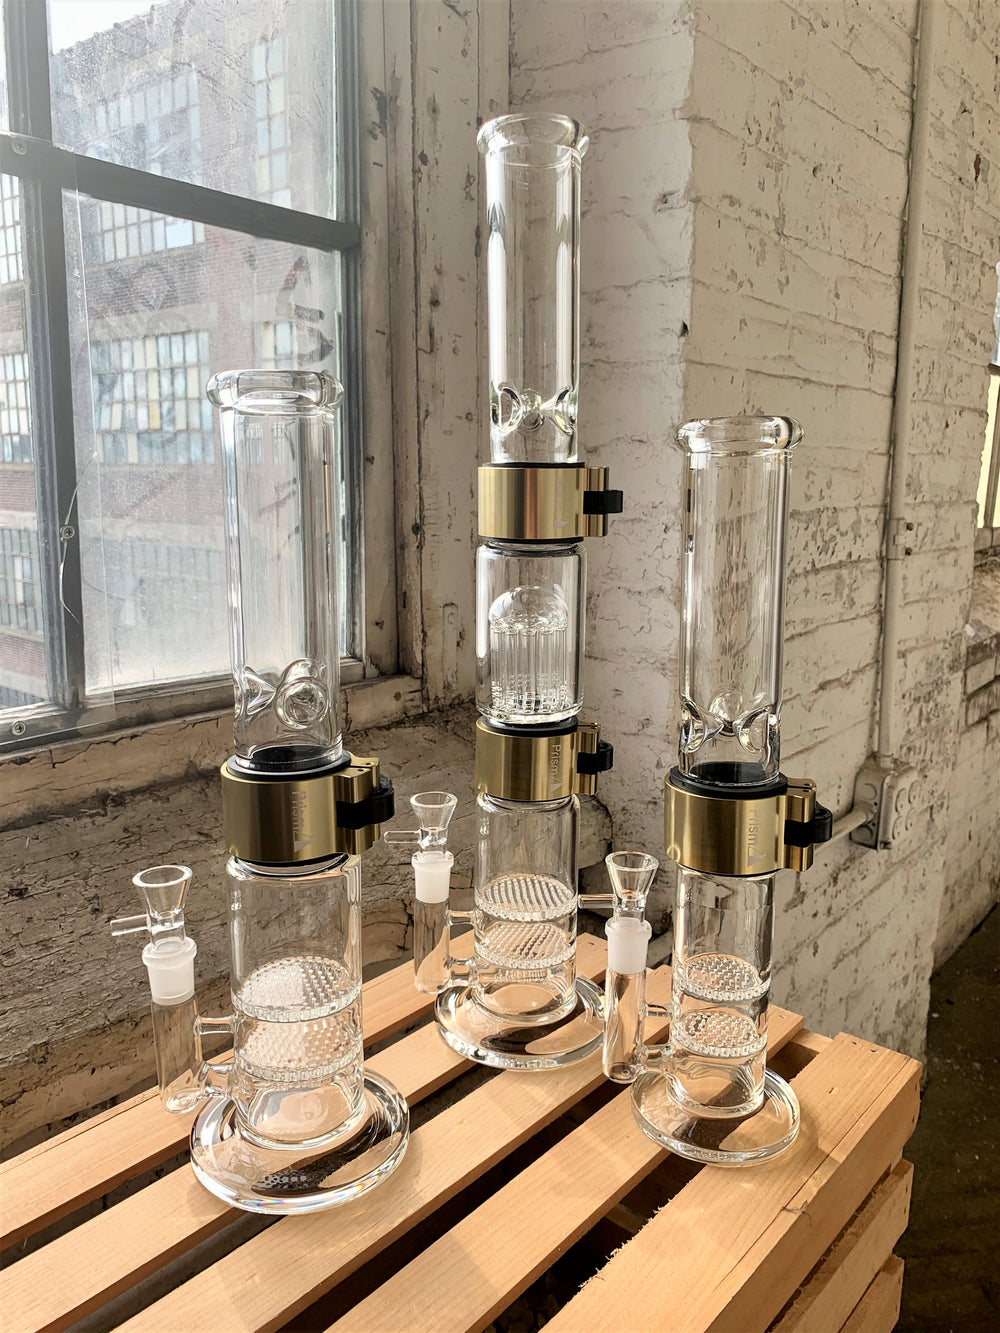 Prism addresses the issues of traditional waterpipes making a custom bong possible. With a variety of bong styles you can create your own custom bong whether its a tall bong or small bong. Also, it's now easy to clean your bong and travel with your bong.